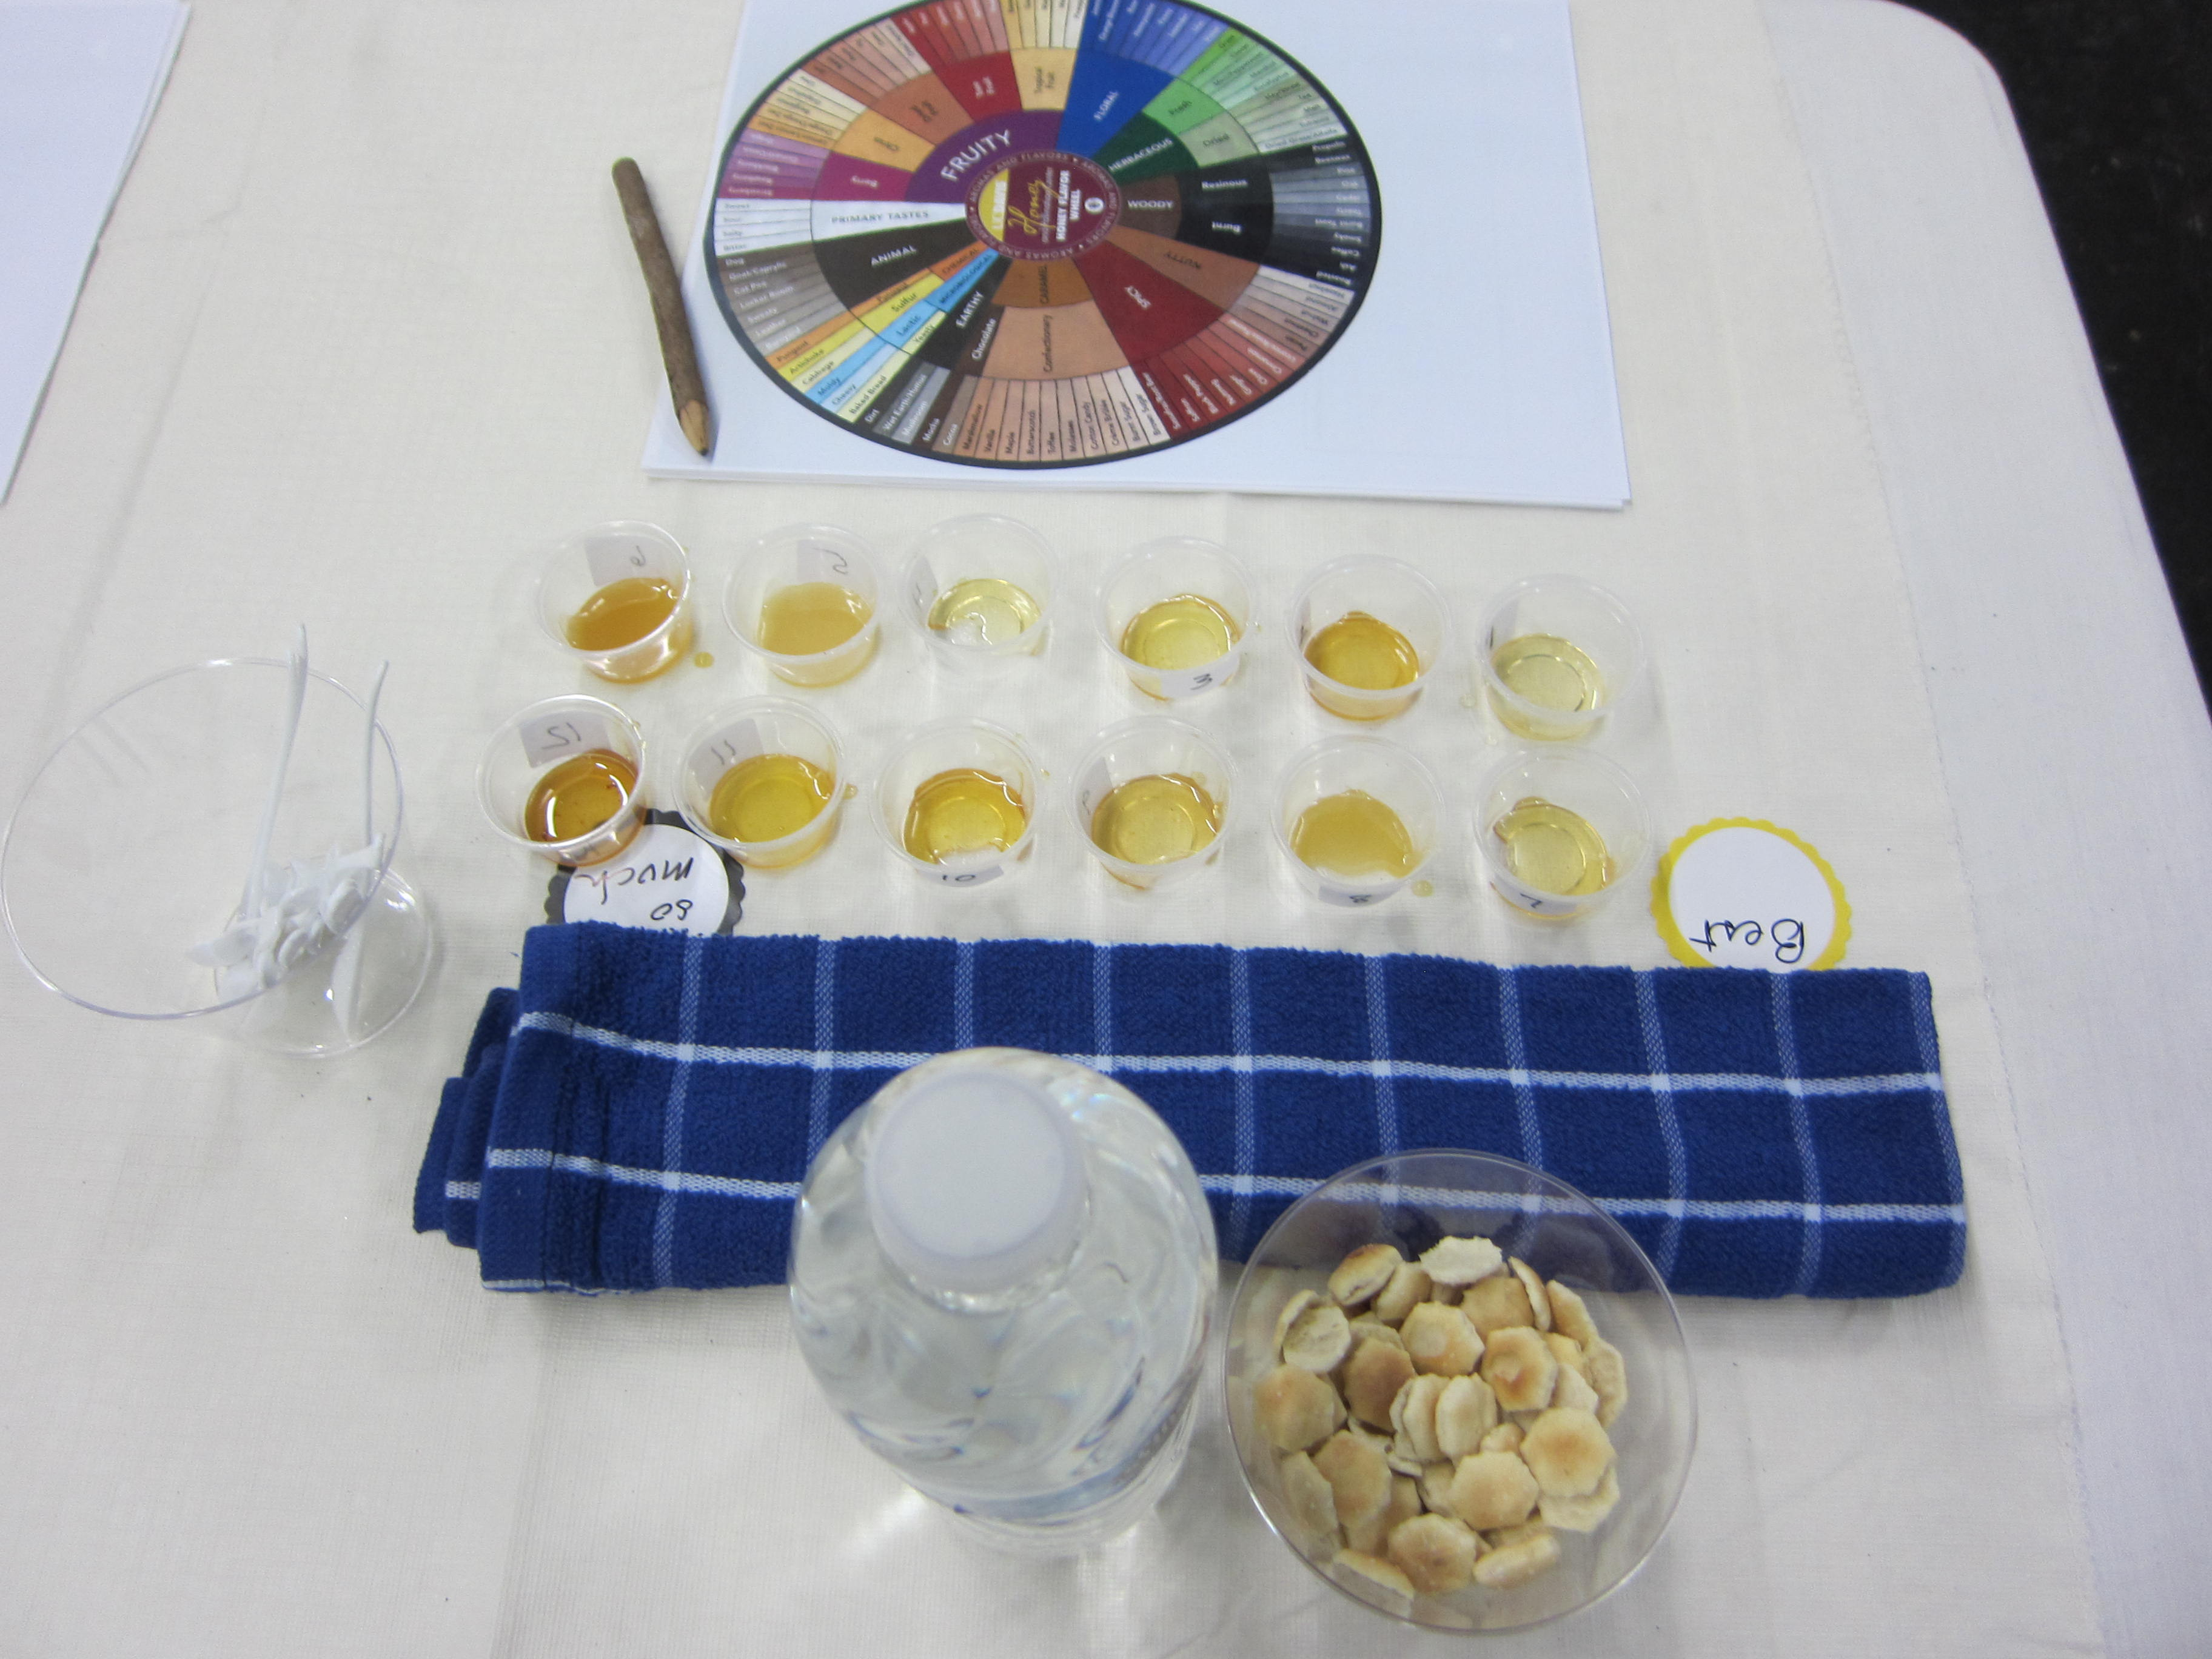 Water and crackers for palate cleansers, along with a honey tasting wheel to distinguish flavors.